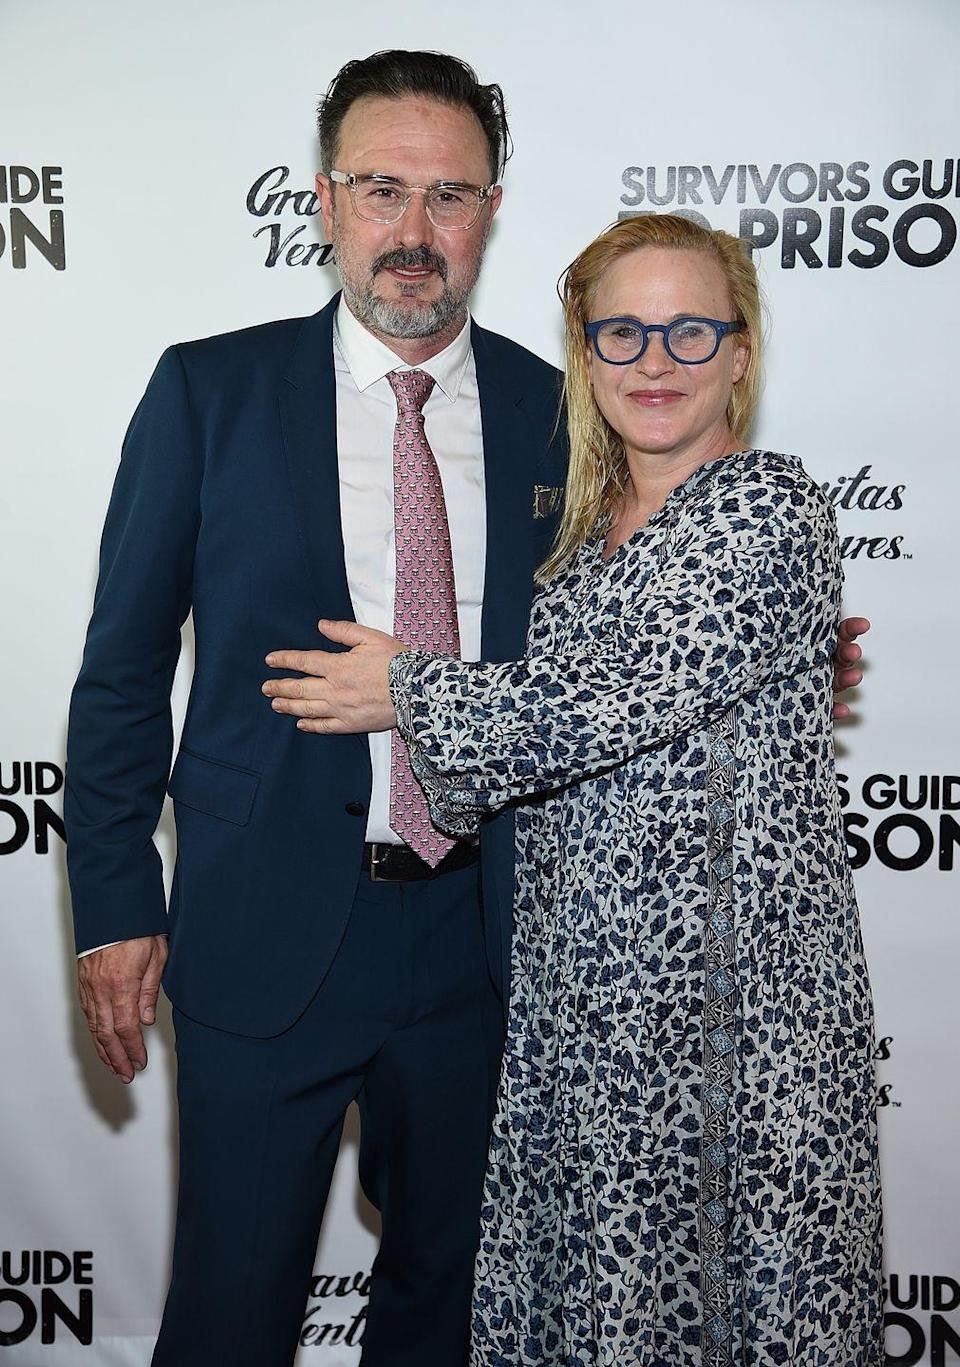 <p>Famous siblings Patricia and David Arquette have three shared siblings, but they're the two we can't stop comparing. Despite their different hair color, the two have the same oblong face shape and small, close set eyes. </p>